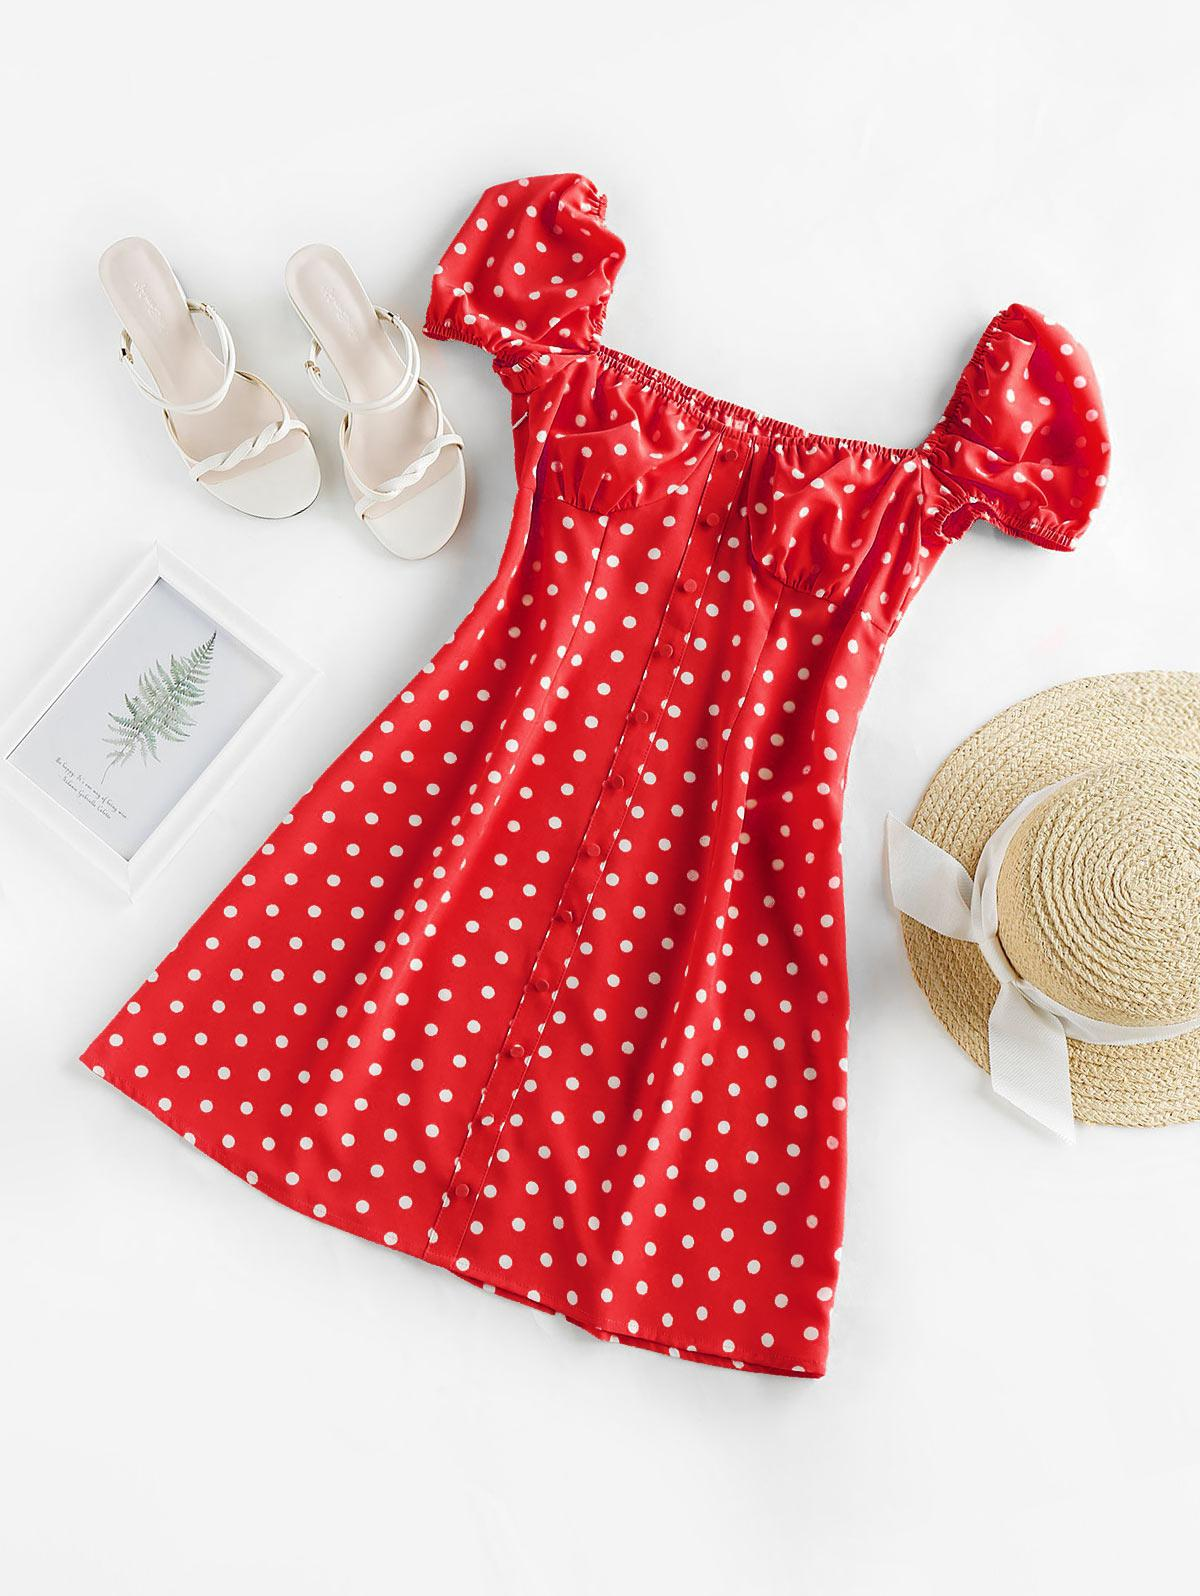 ZAFUL Polka Dot Button Embellished Cupped Dress